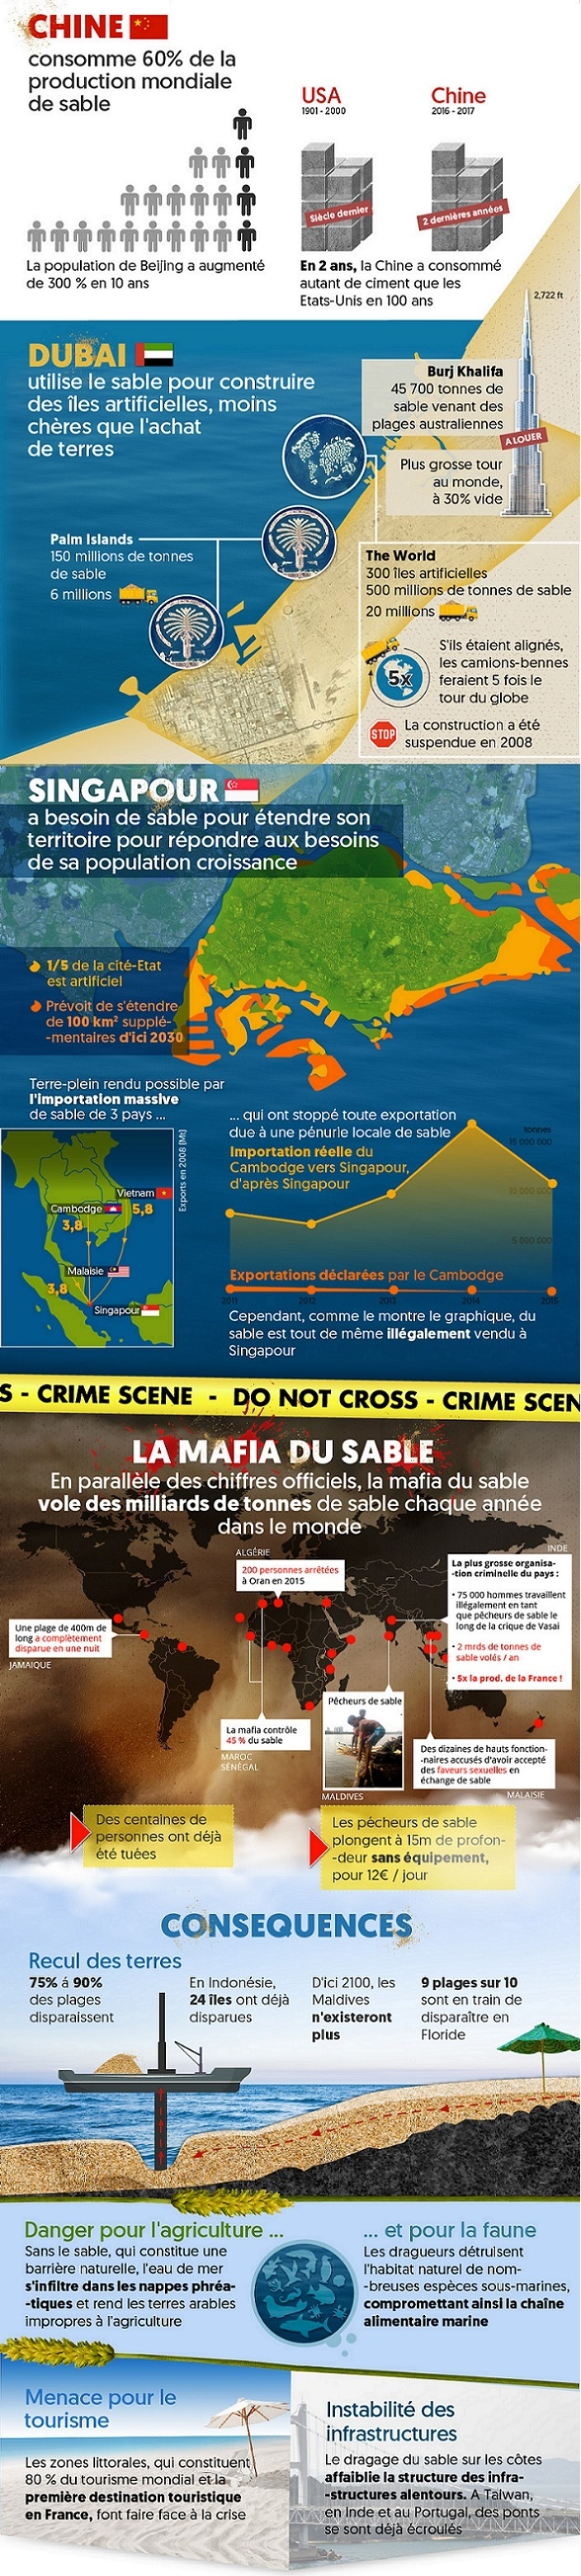 sable penurie-sable-infographie2-1